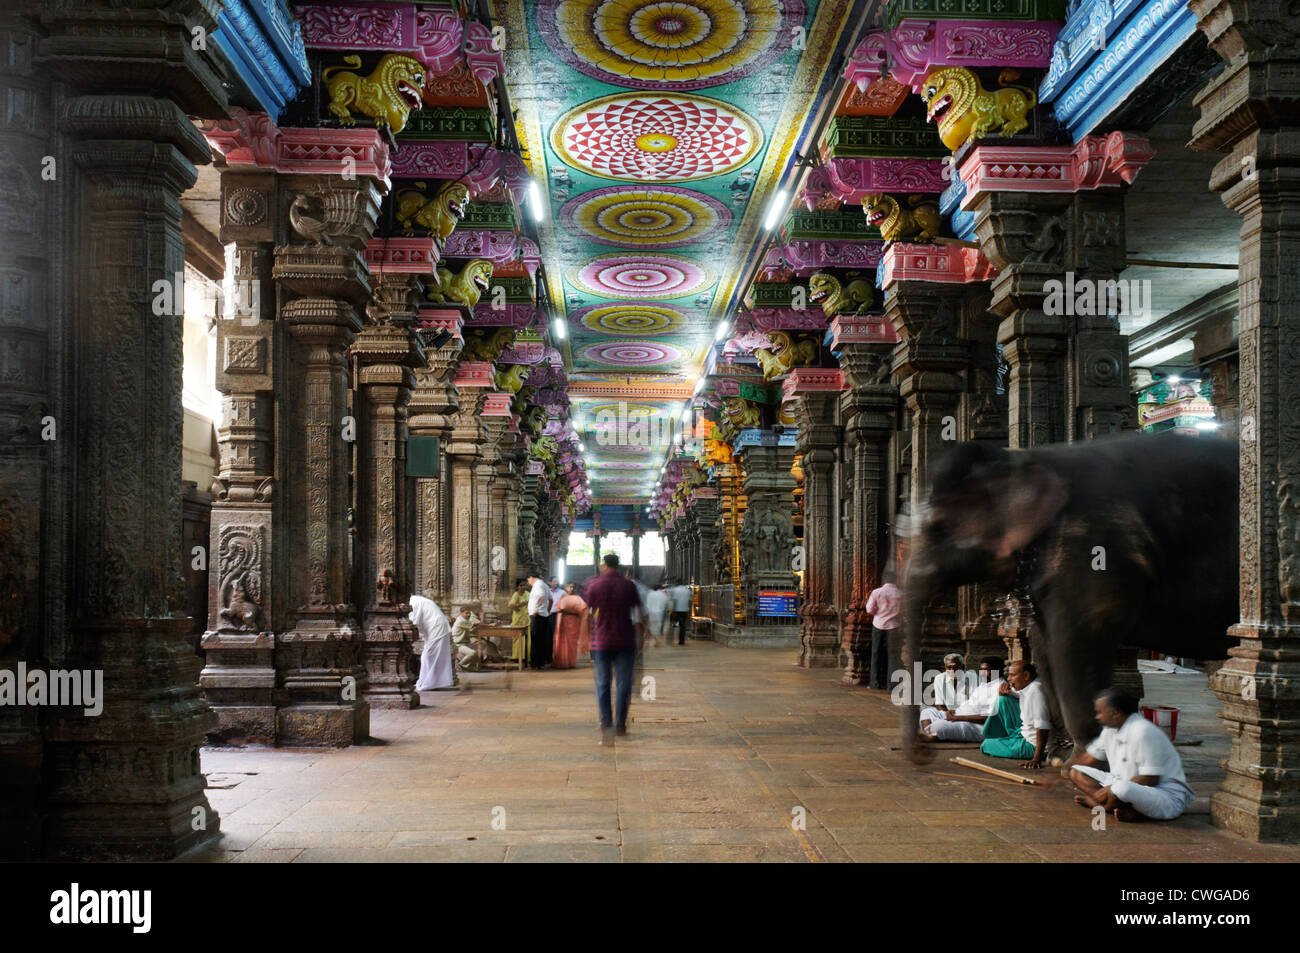 Inside Meenakshi Temple in Madurai South India Stock Photo ...